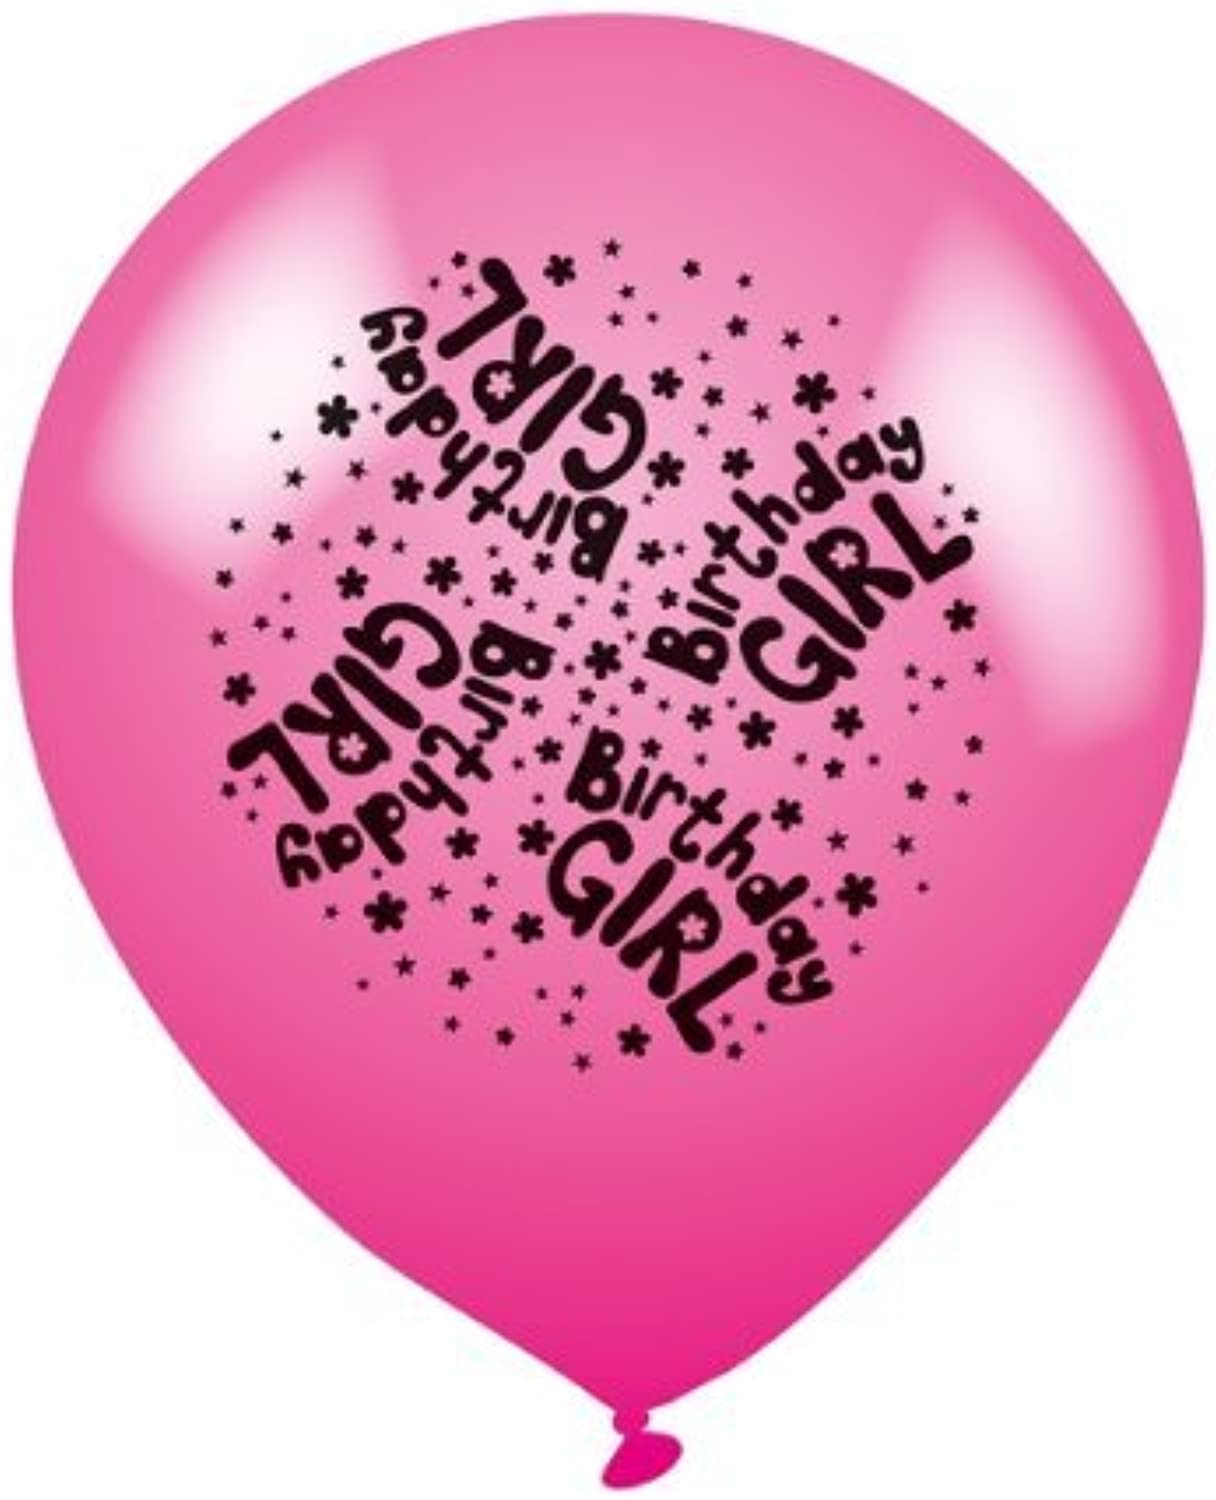 Pack of 8 'Birthday Girl' Latex Party Balloons - Air or Helium Fill by Expression Factory